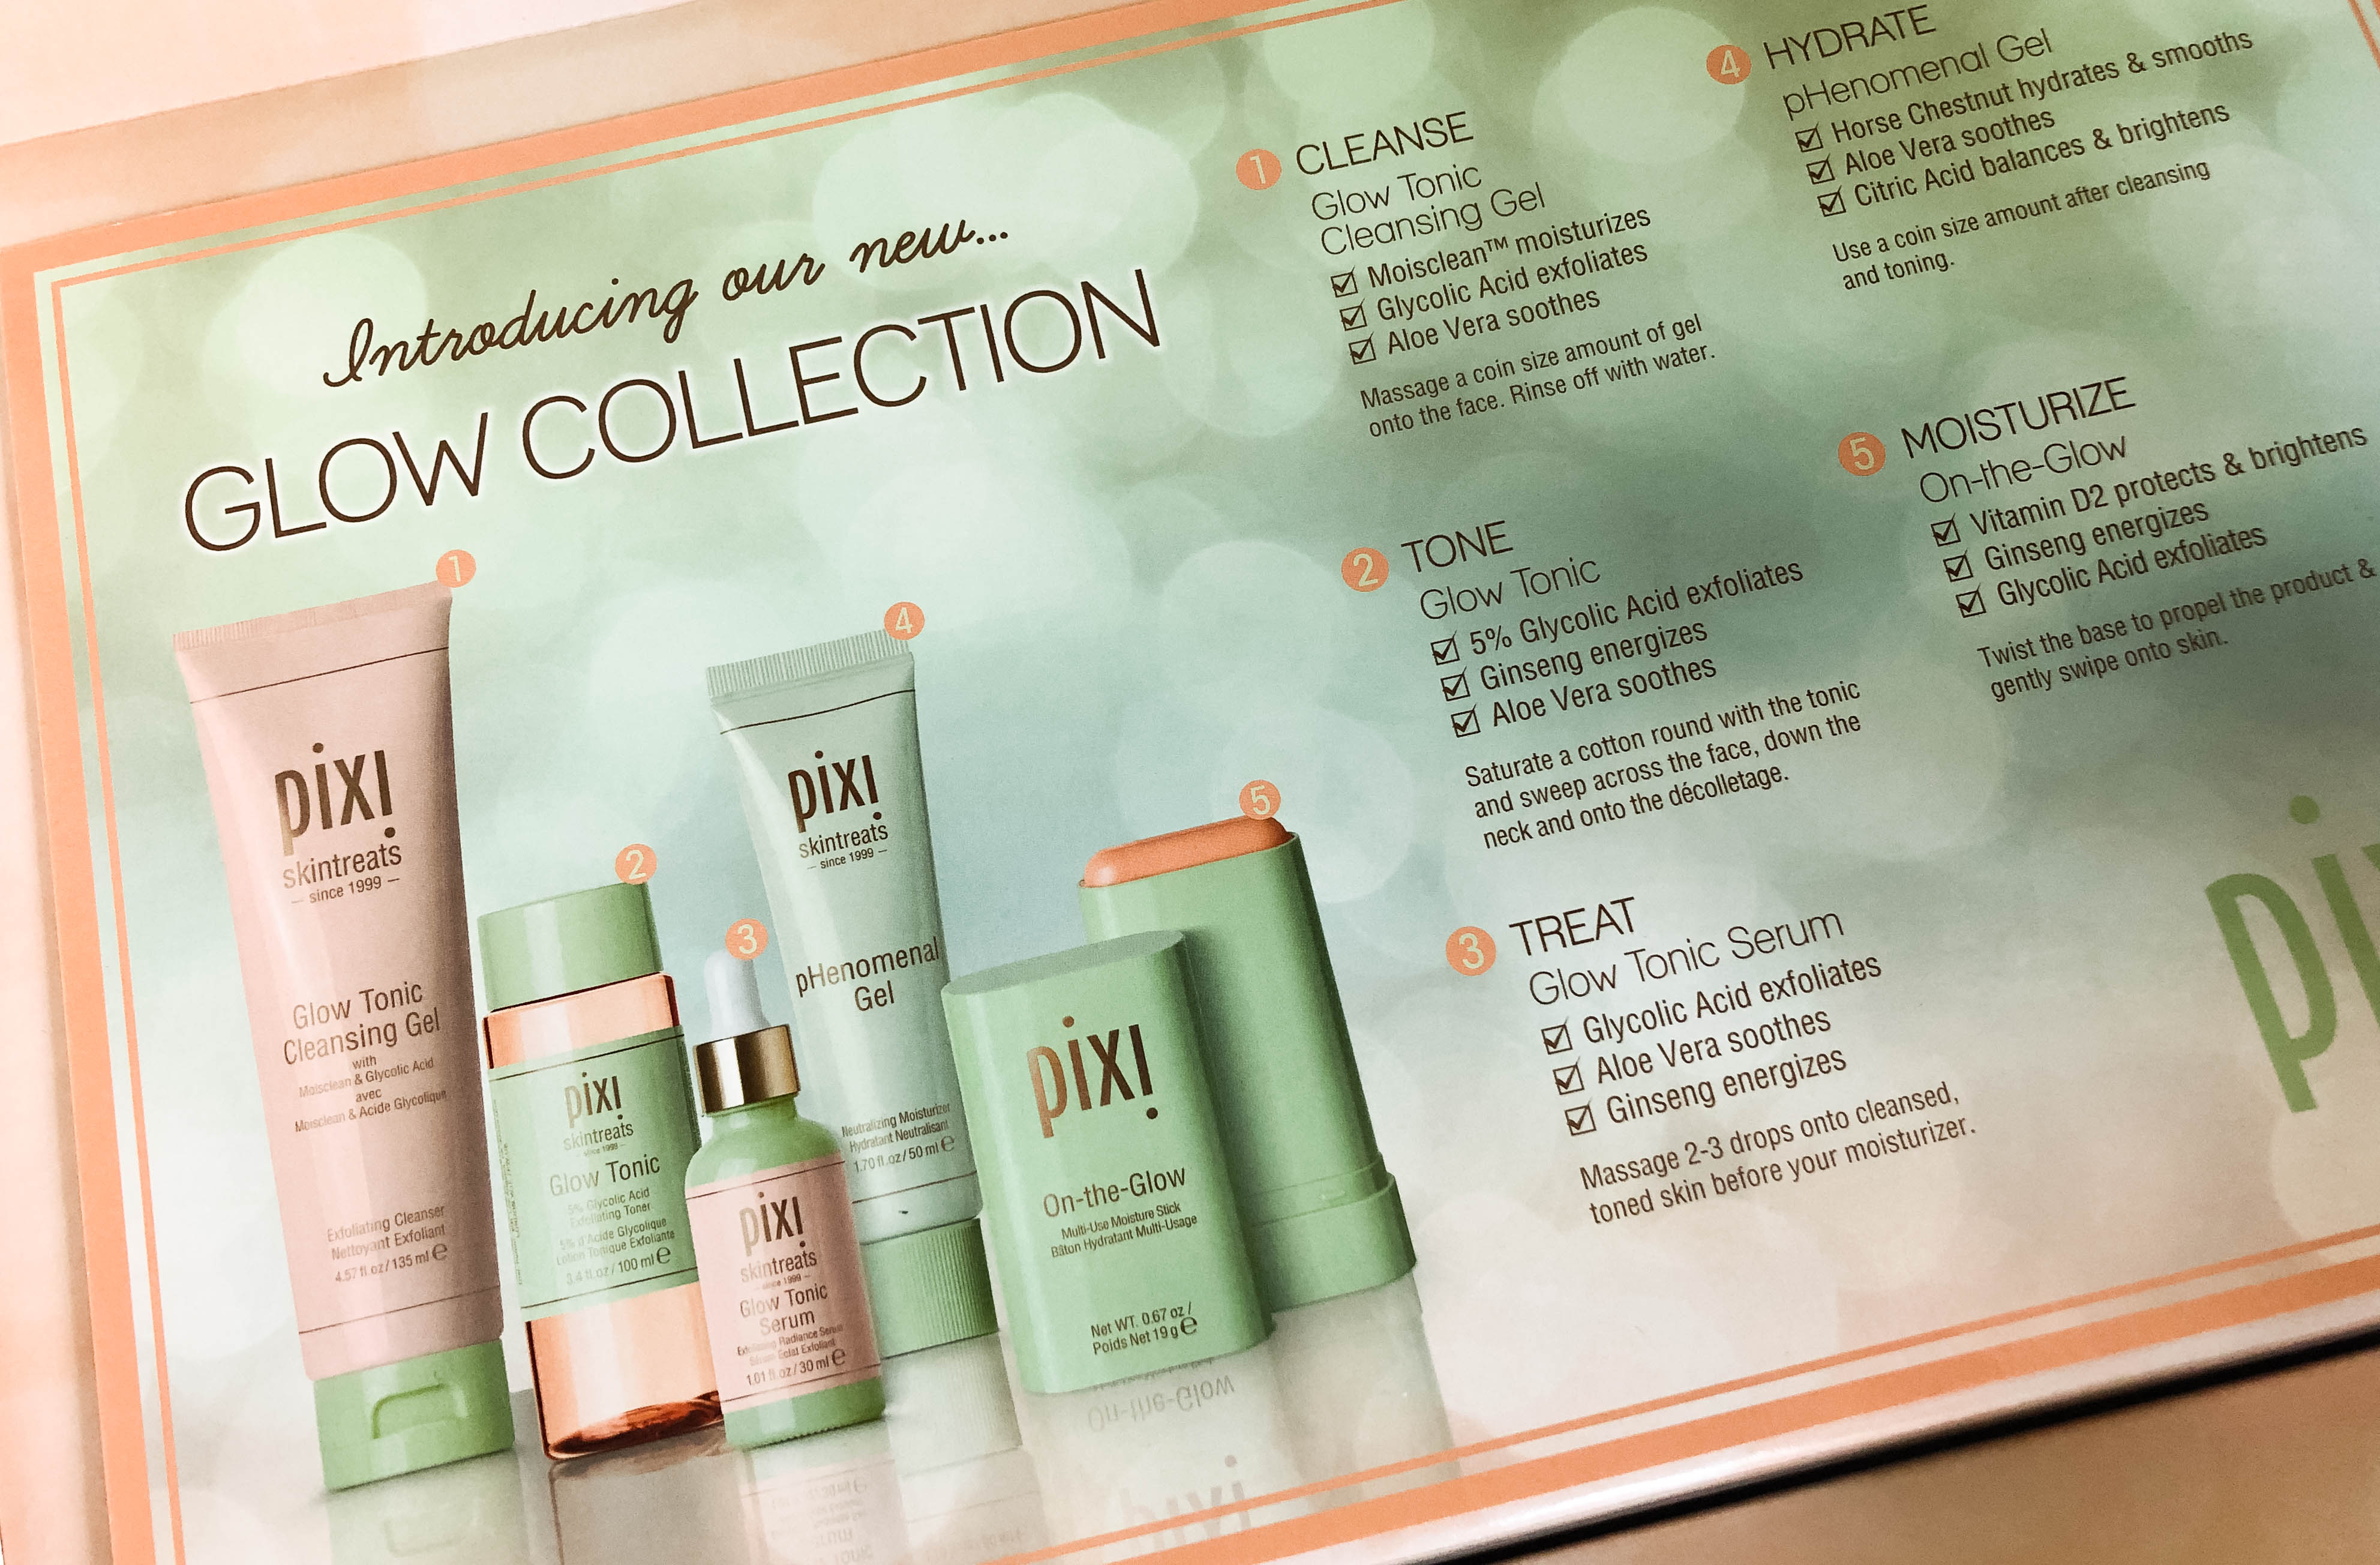 The complete Glow Collection with product description